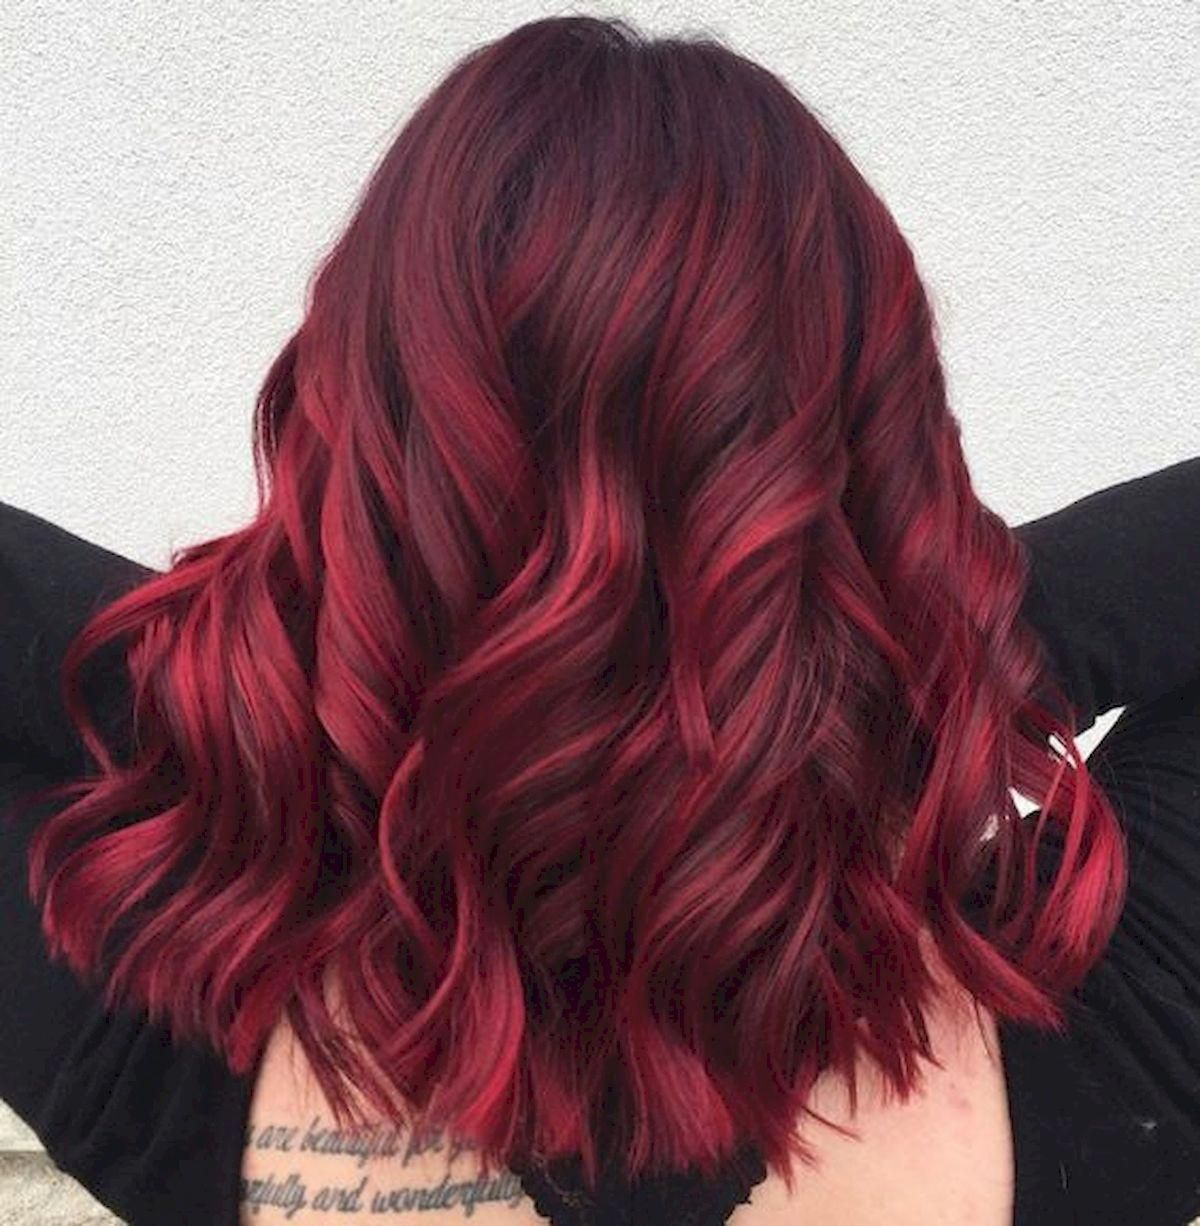 60 Awesome Red Hair Color Ideas 63 Fashion And Lifestyle Redhaircolor In 2020 Burgundy Hair Short Burgundy Hair Wine Hair